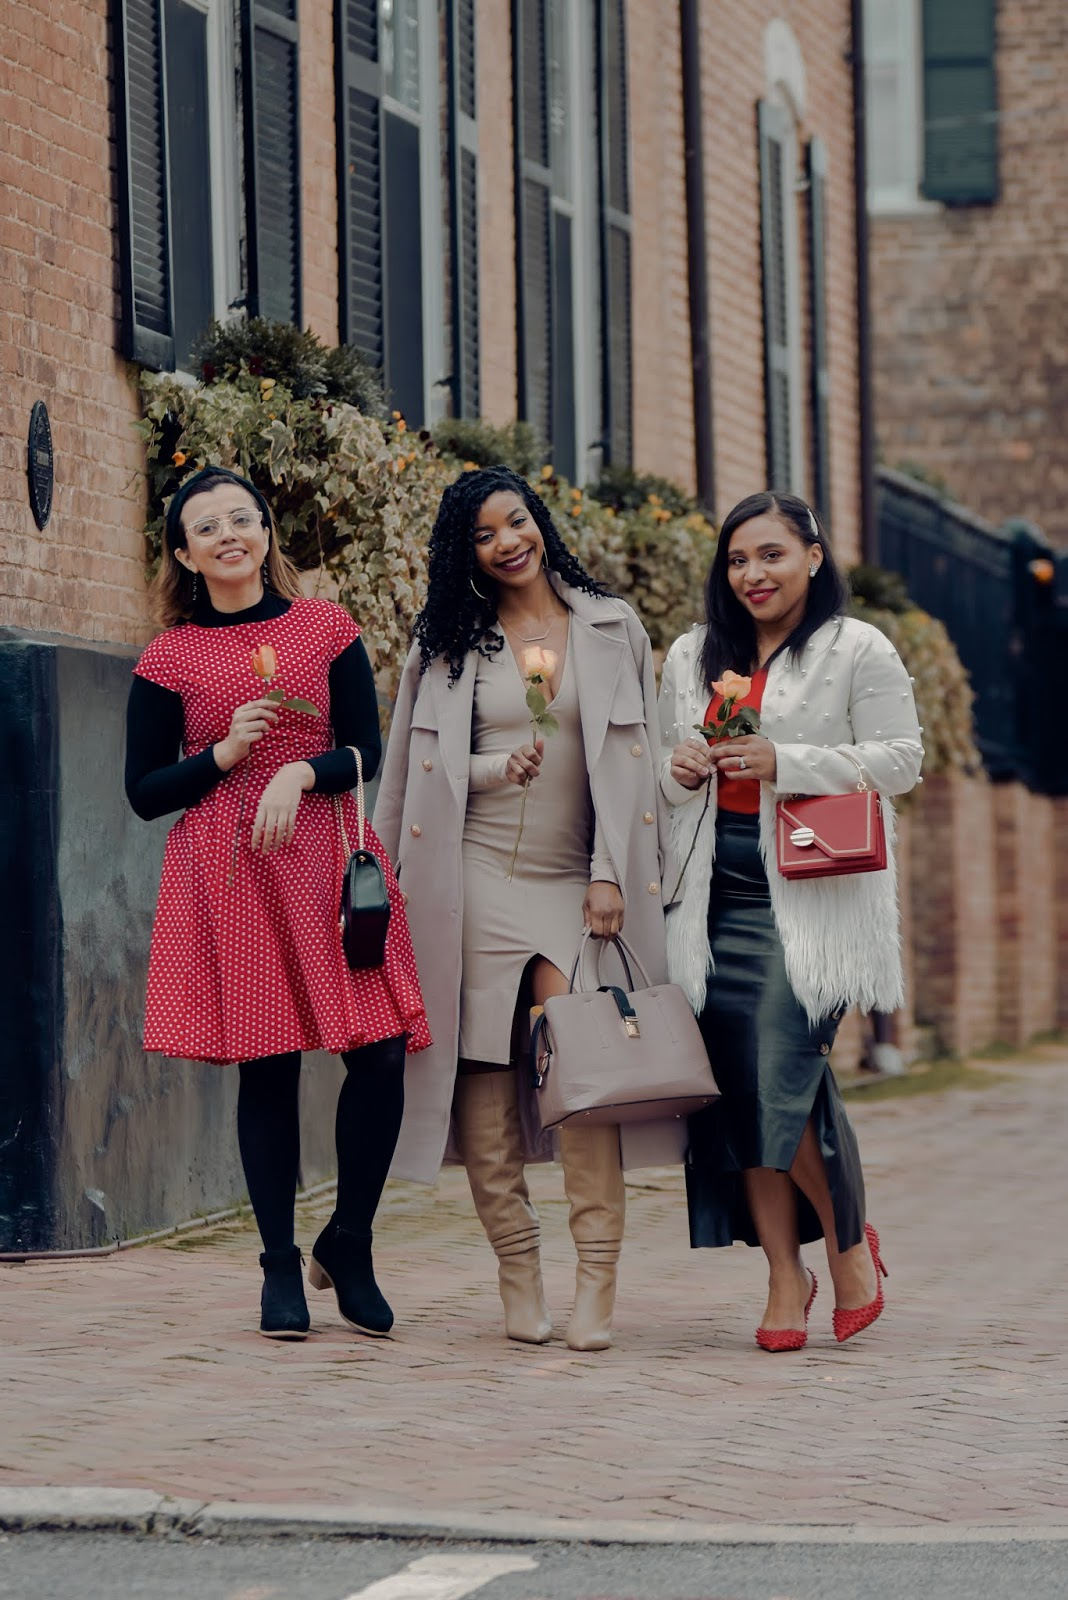 mari estilo, kasi perkins, galentines day, girls night out, gno, pattys kloset, ladies night outfit ideas